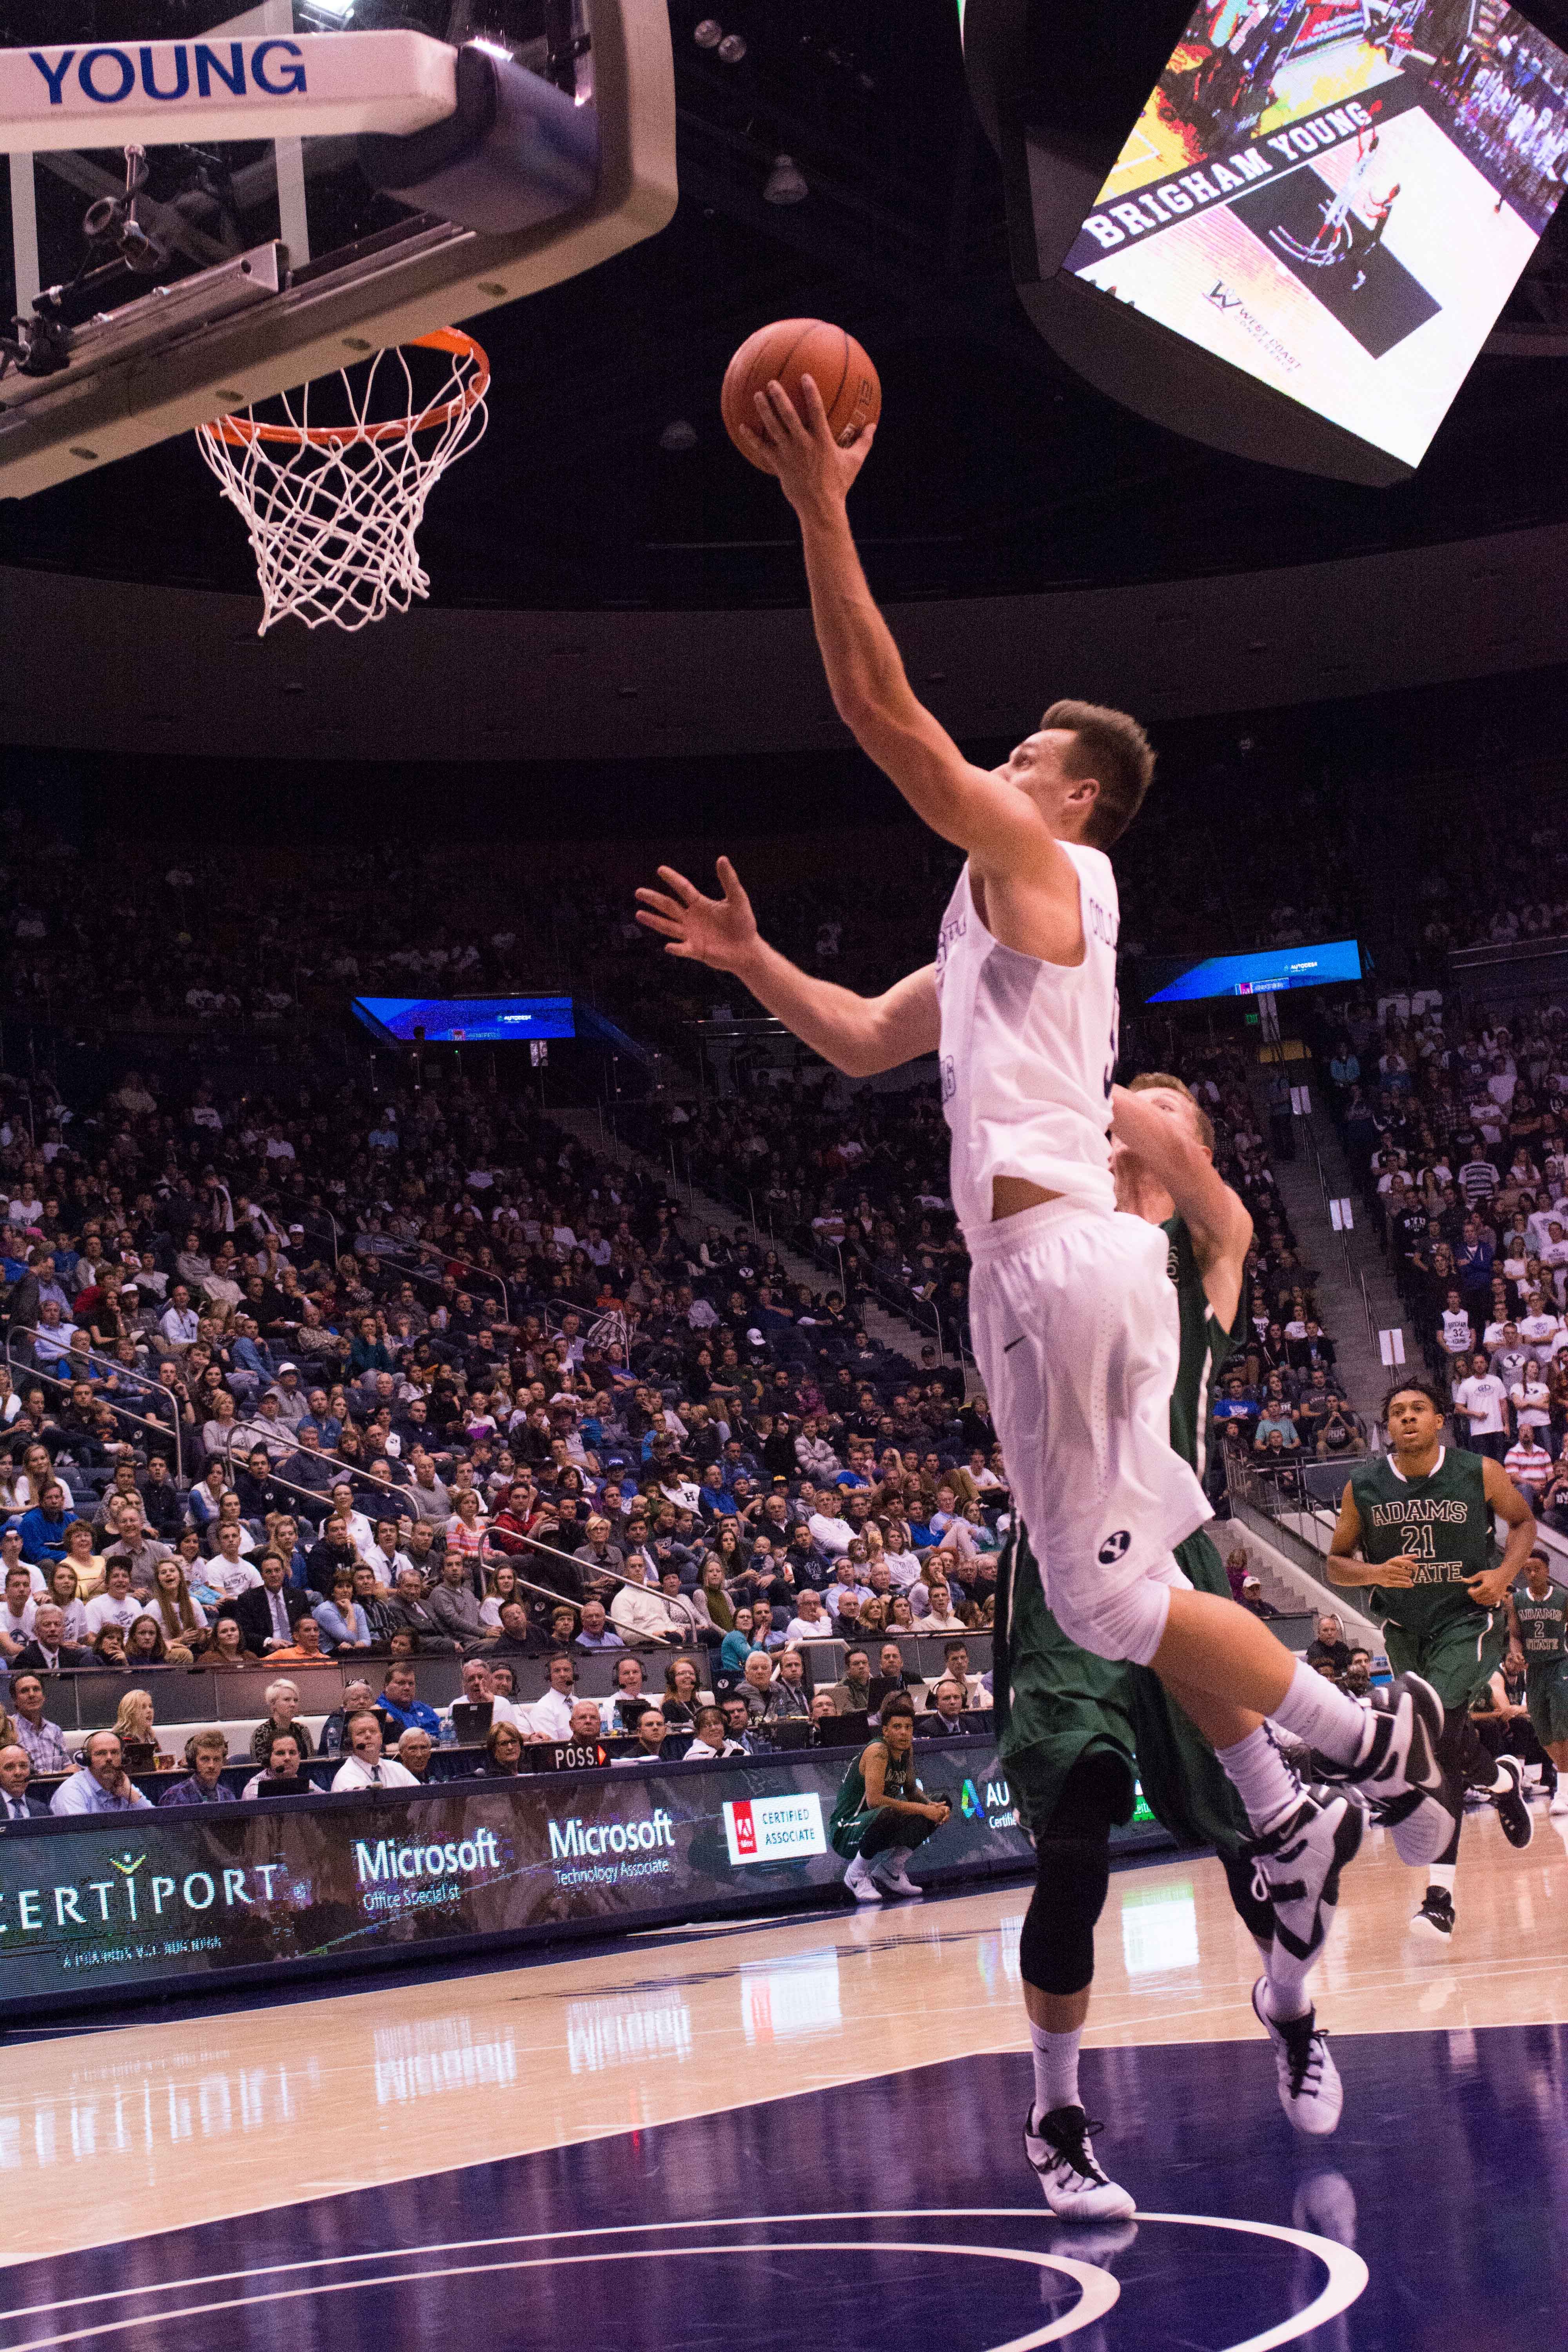 Kyle Collinsworth gets some air against Adams State. Collinsworth now owns the NCAA's single season and career triple-doubles record. (Nathalie Bothwell)